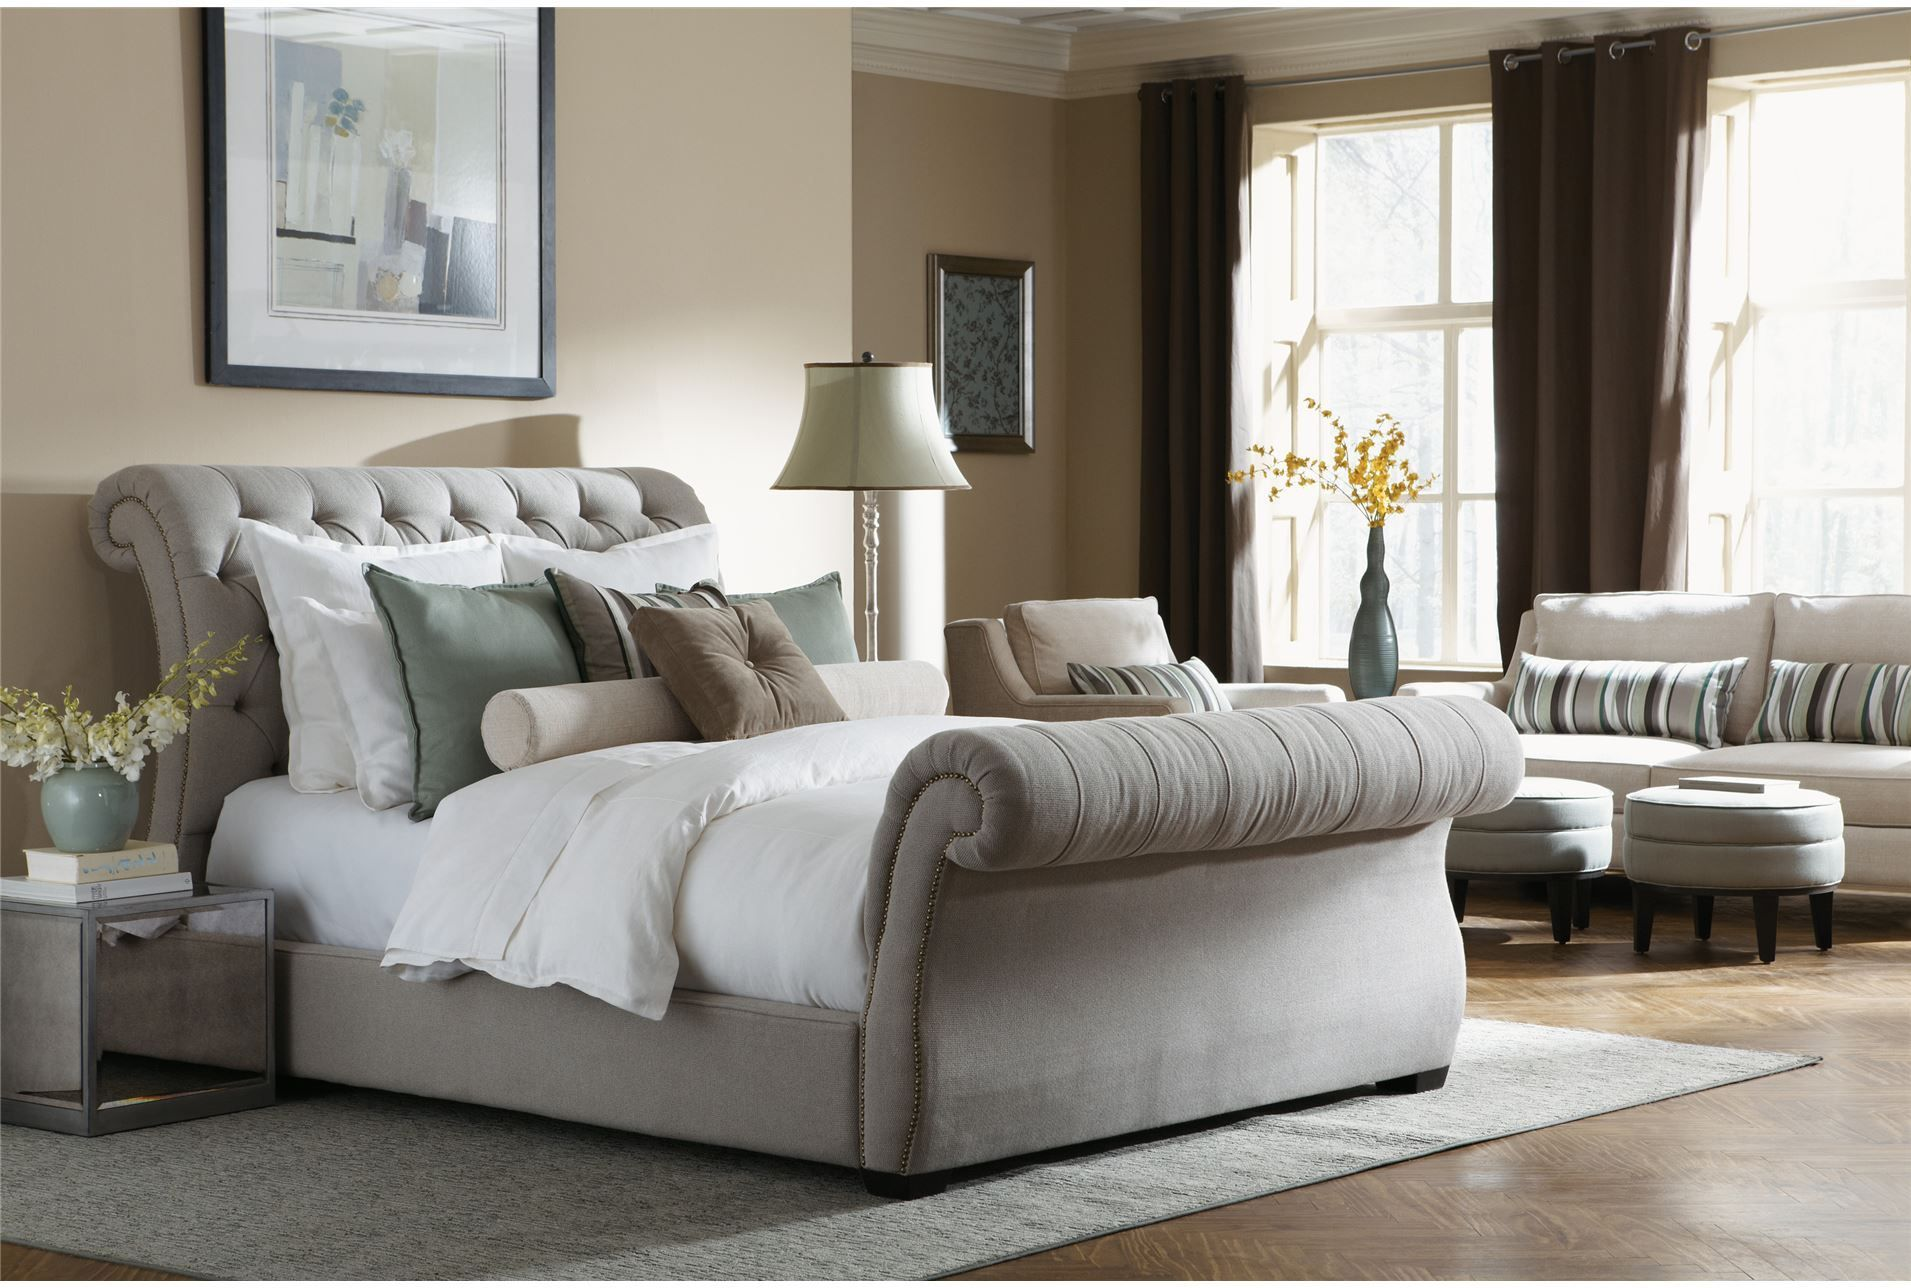 TuftedSleighBedFabricUpholstery King Bed With Soft Grey Tufted Headboard And Luxurious